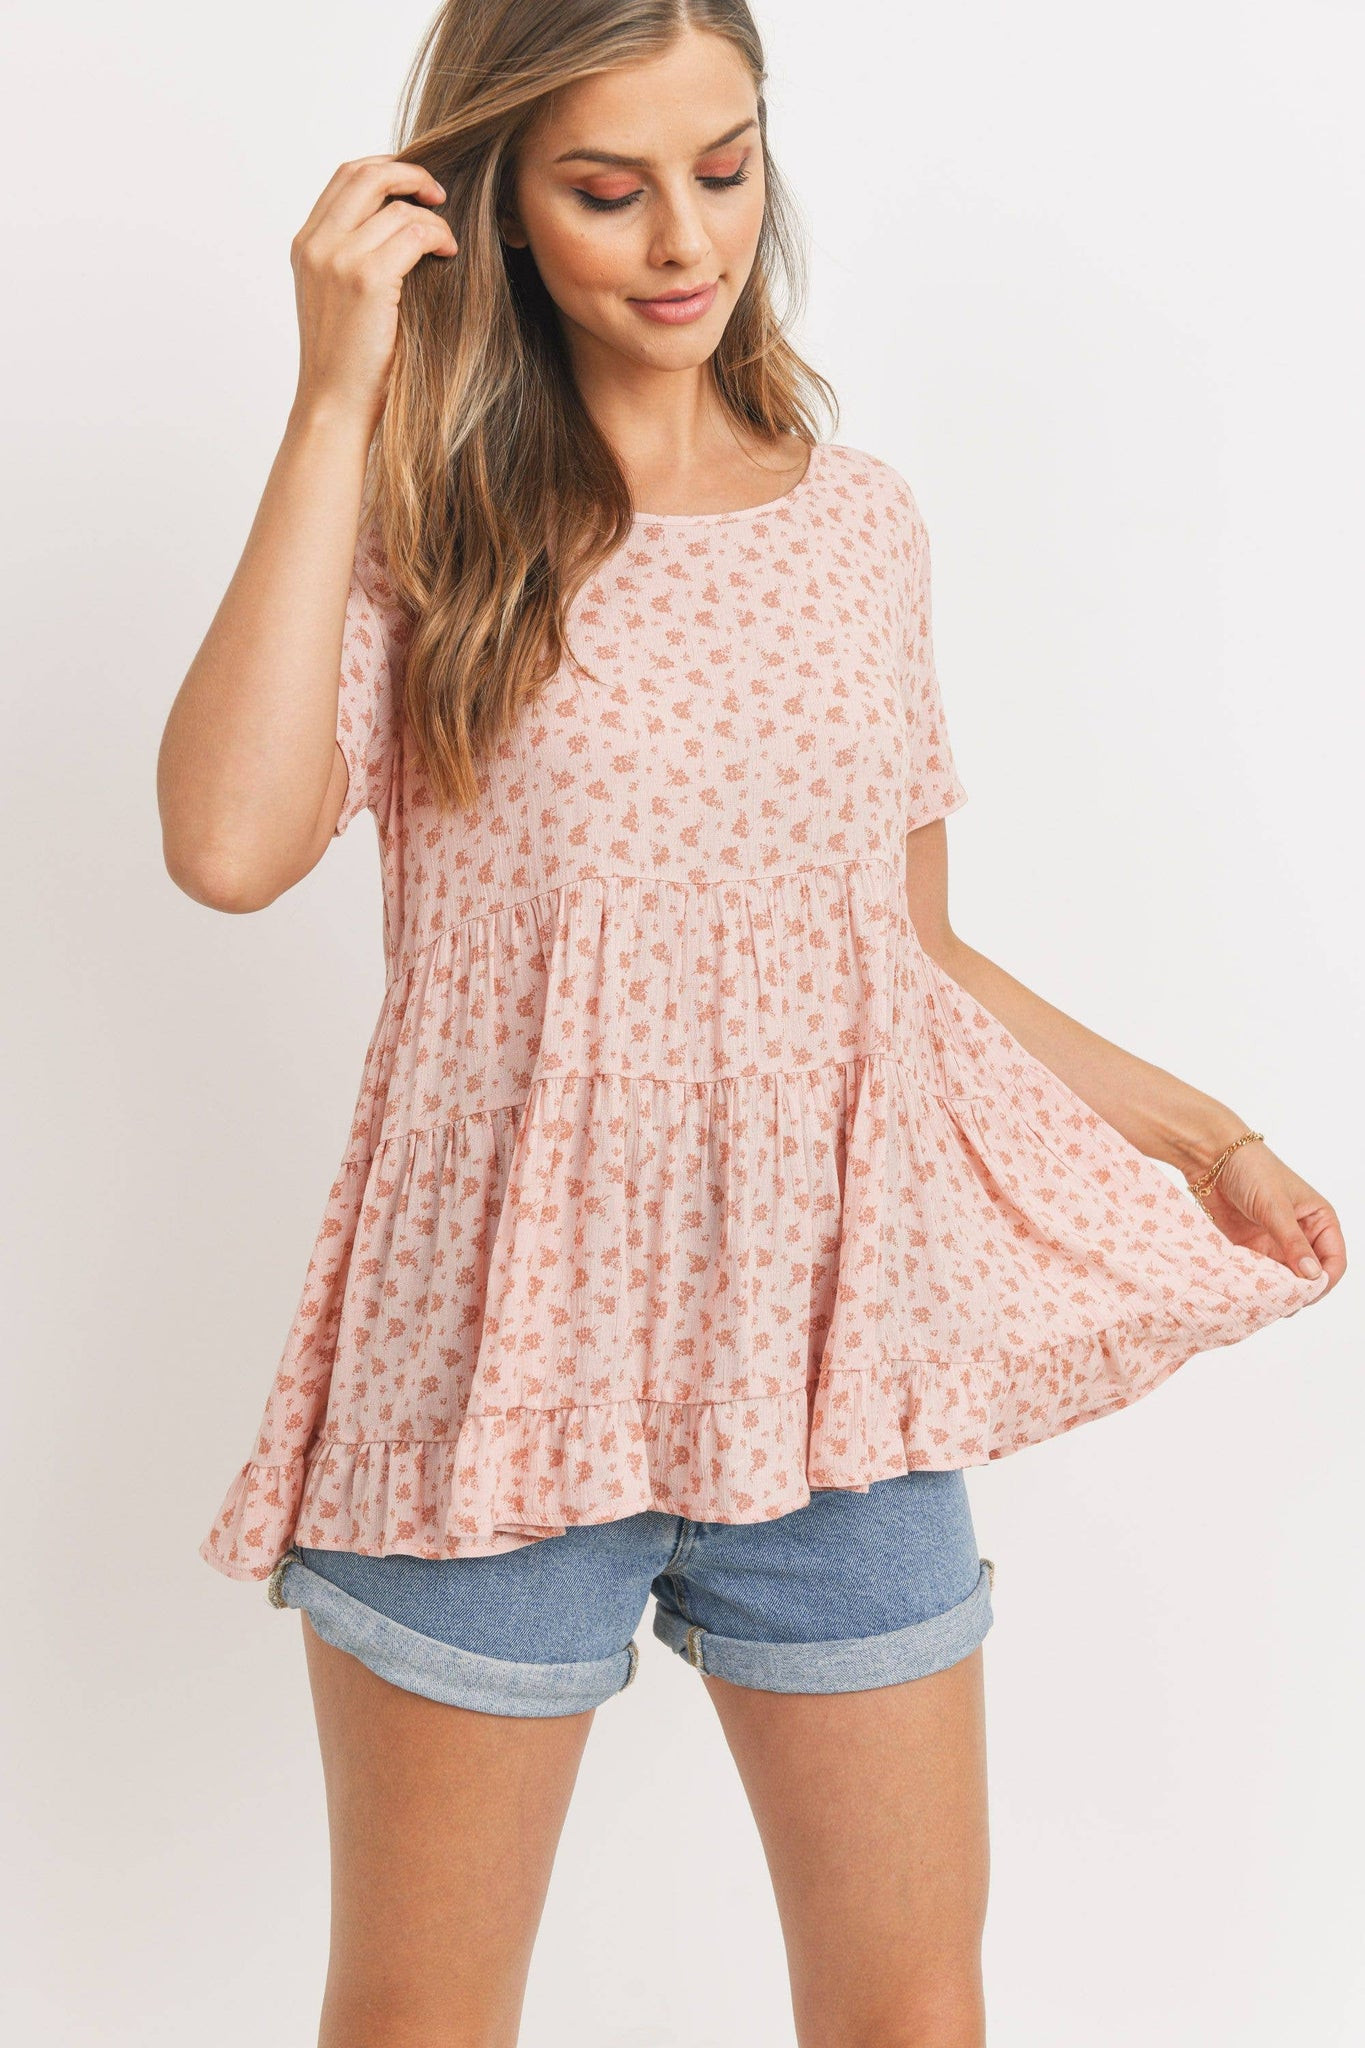 CANG CANG FLORAL TOP WITH BACK TIE